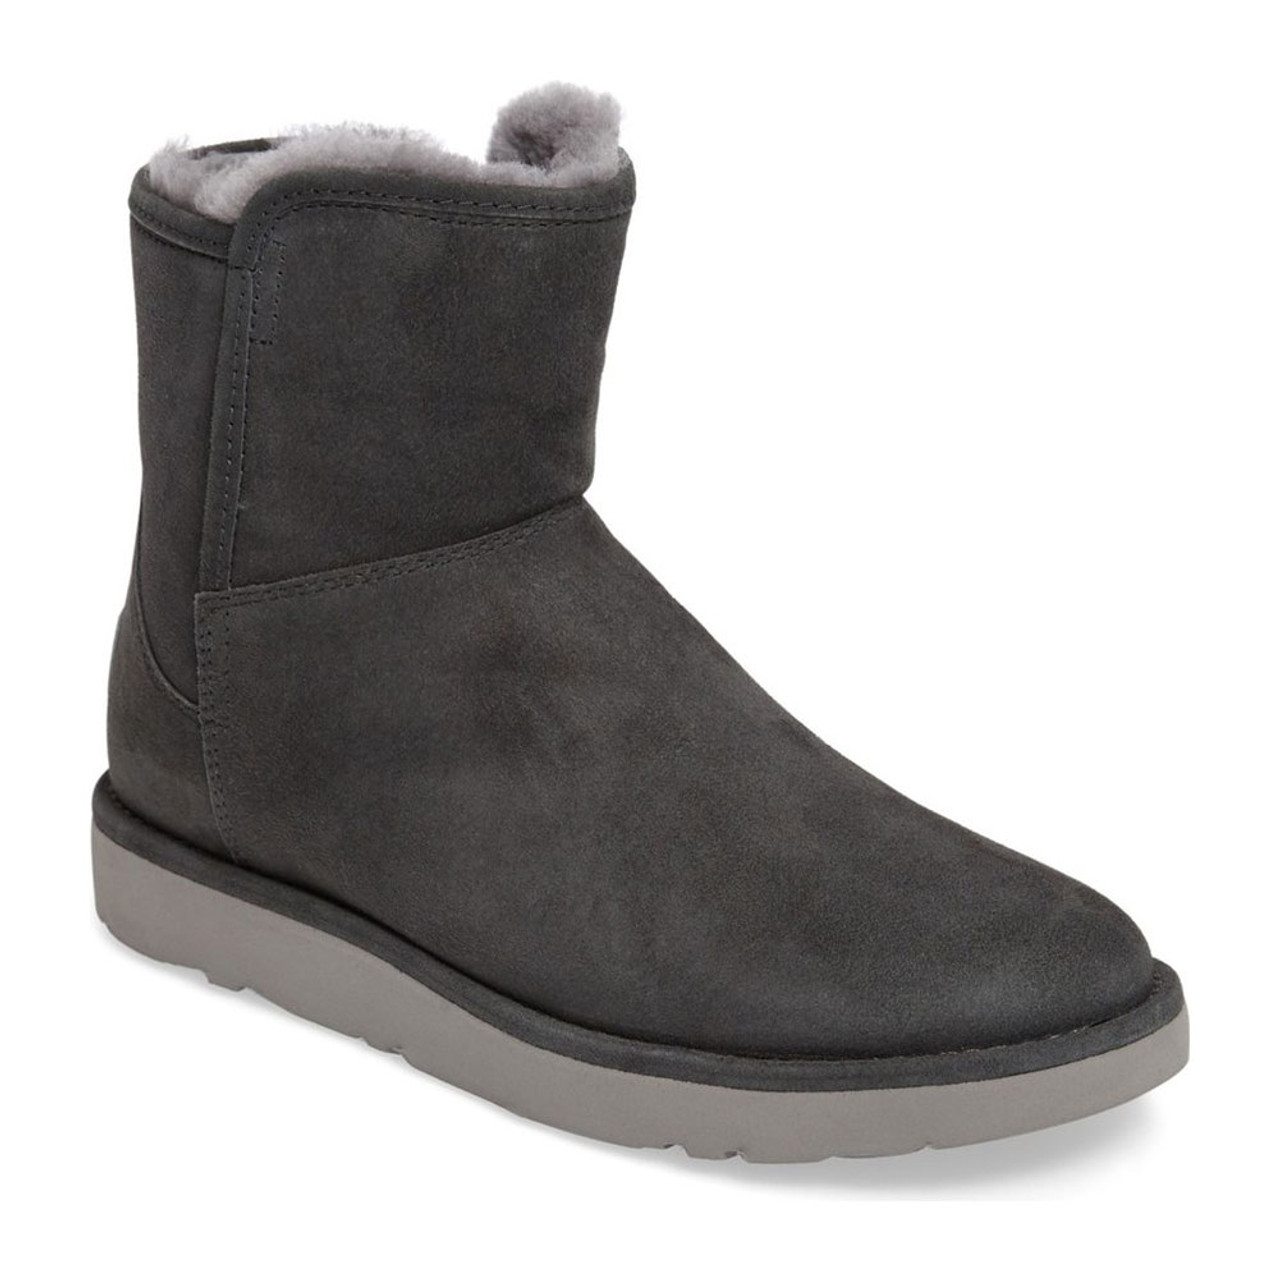 b2c8318ba80 UGG Women's Abree Mini Boot Grigio